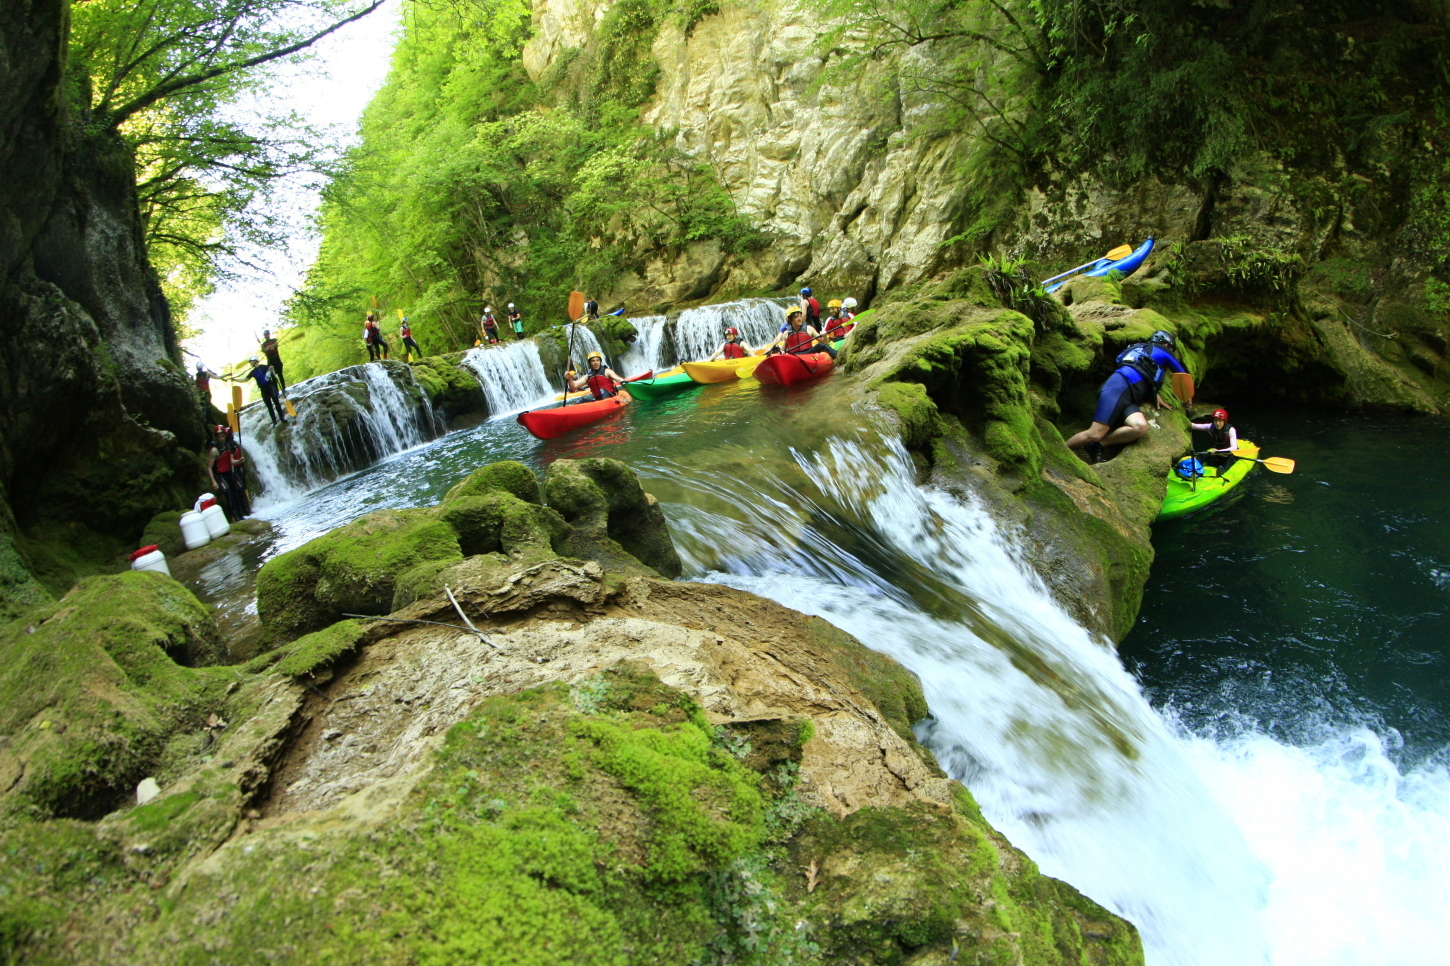 Join us on a kayaking trip down the mreznica river canyon